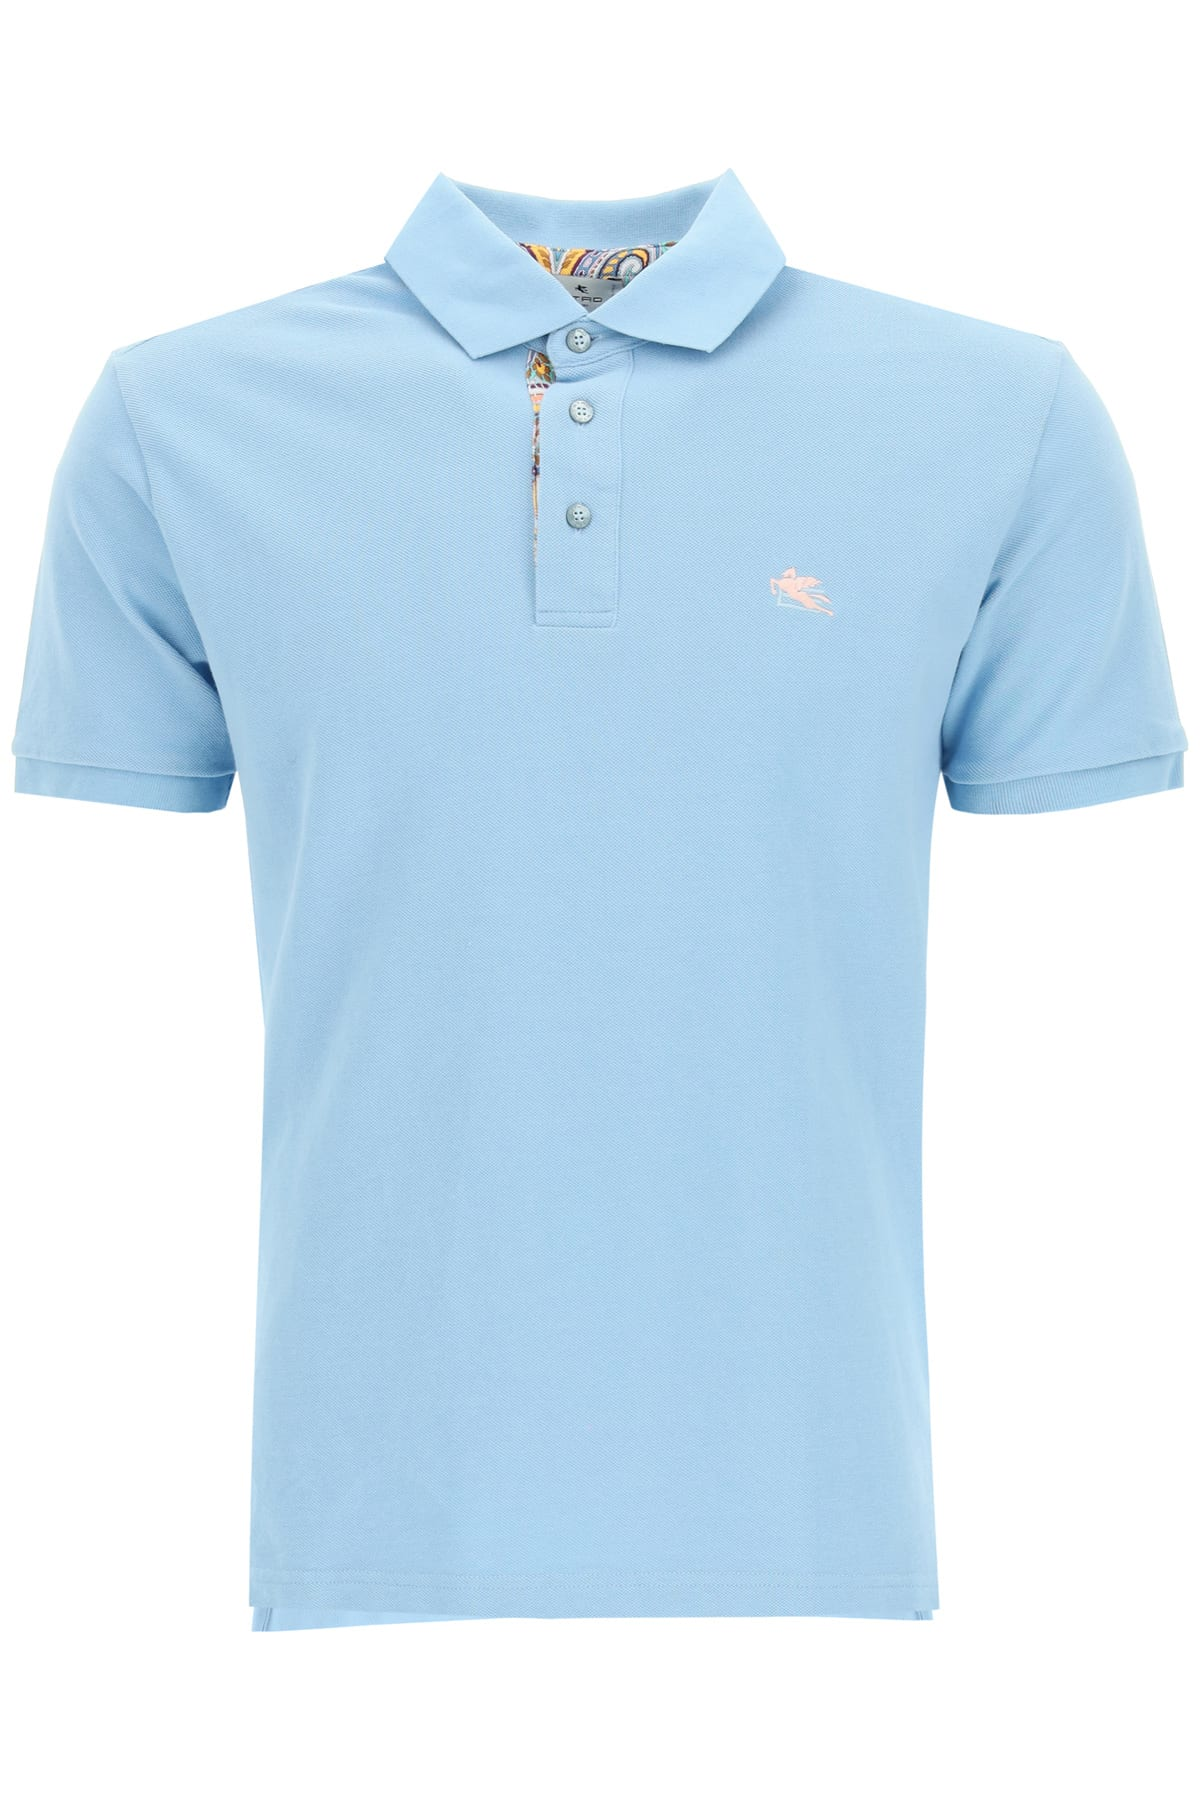 Etro POLO SHIRT WITH PEGASUS EMBROIDERY